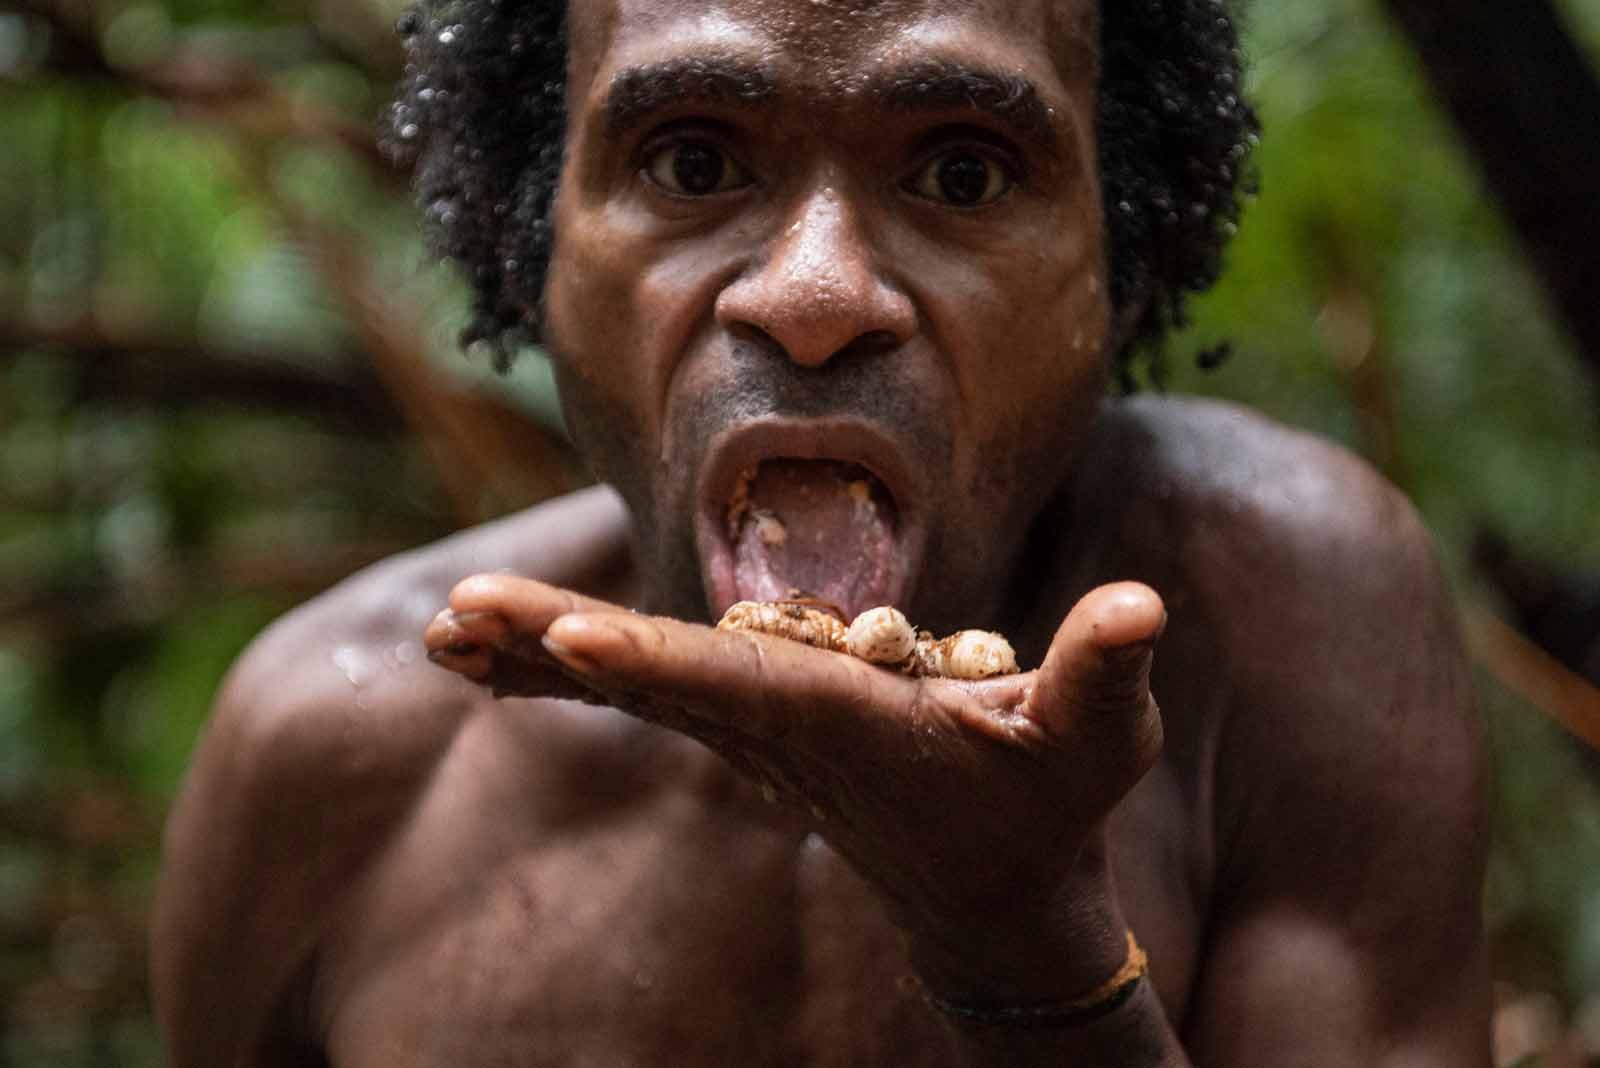 It may seem like this is ancient history, but cannibal tribes are still roaming the planet as we speak. The Korowai are still practicing cannibalism today.